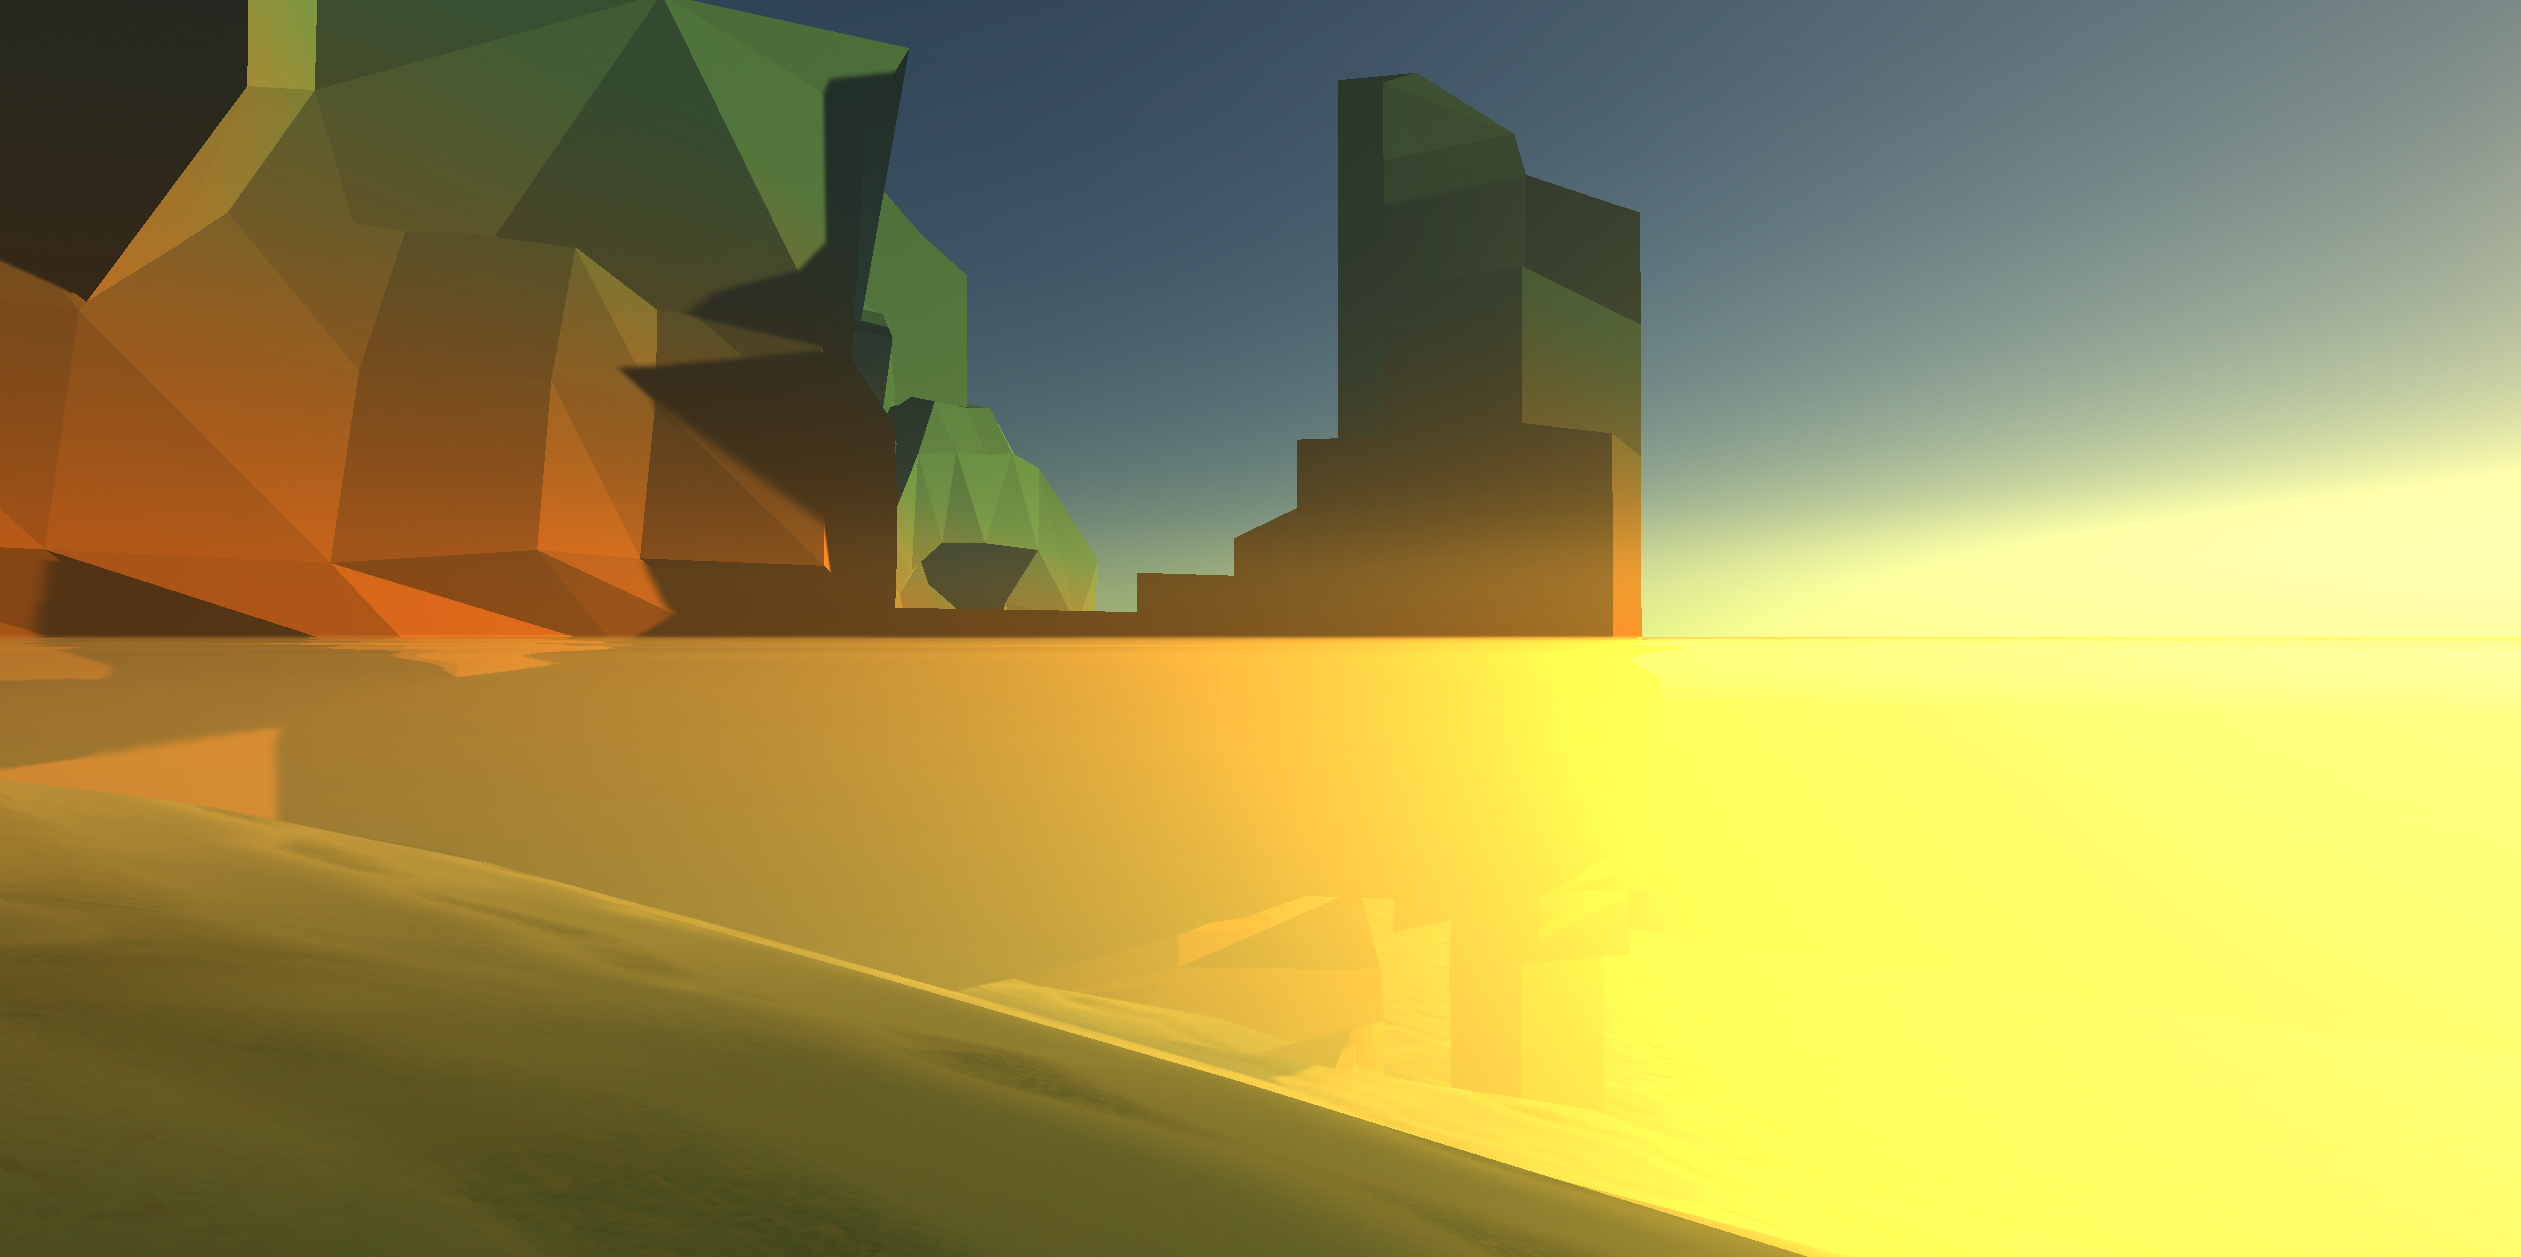 Unity_2017-11-10_23-46-35.png